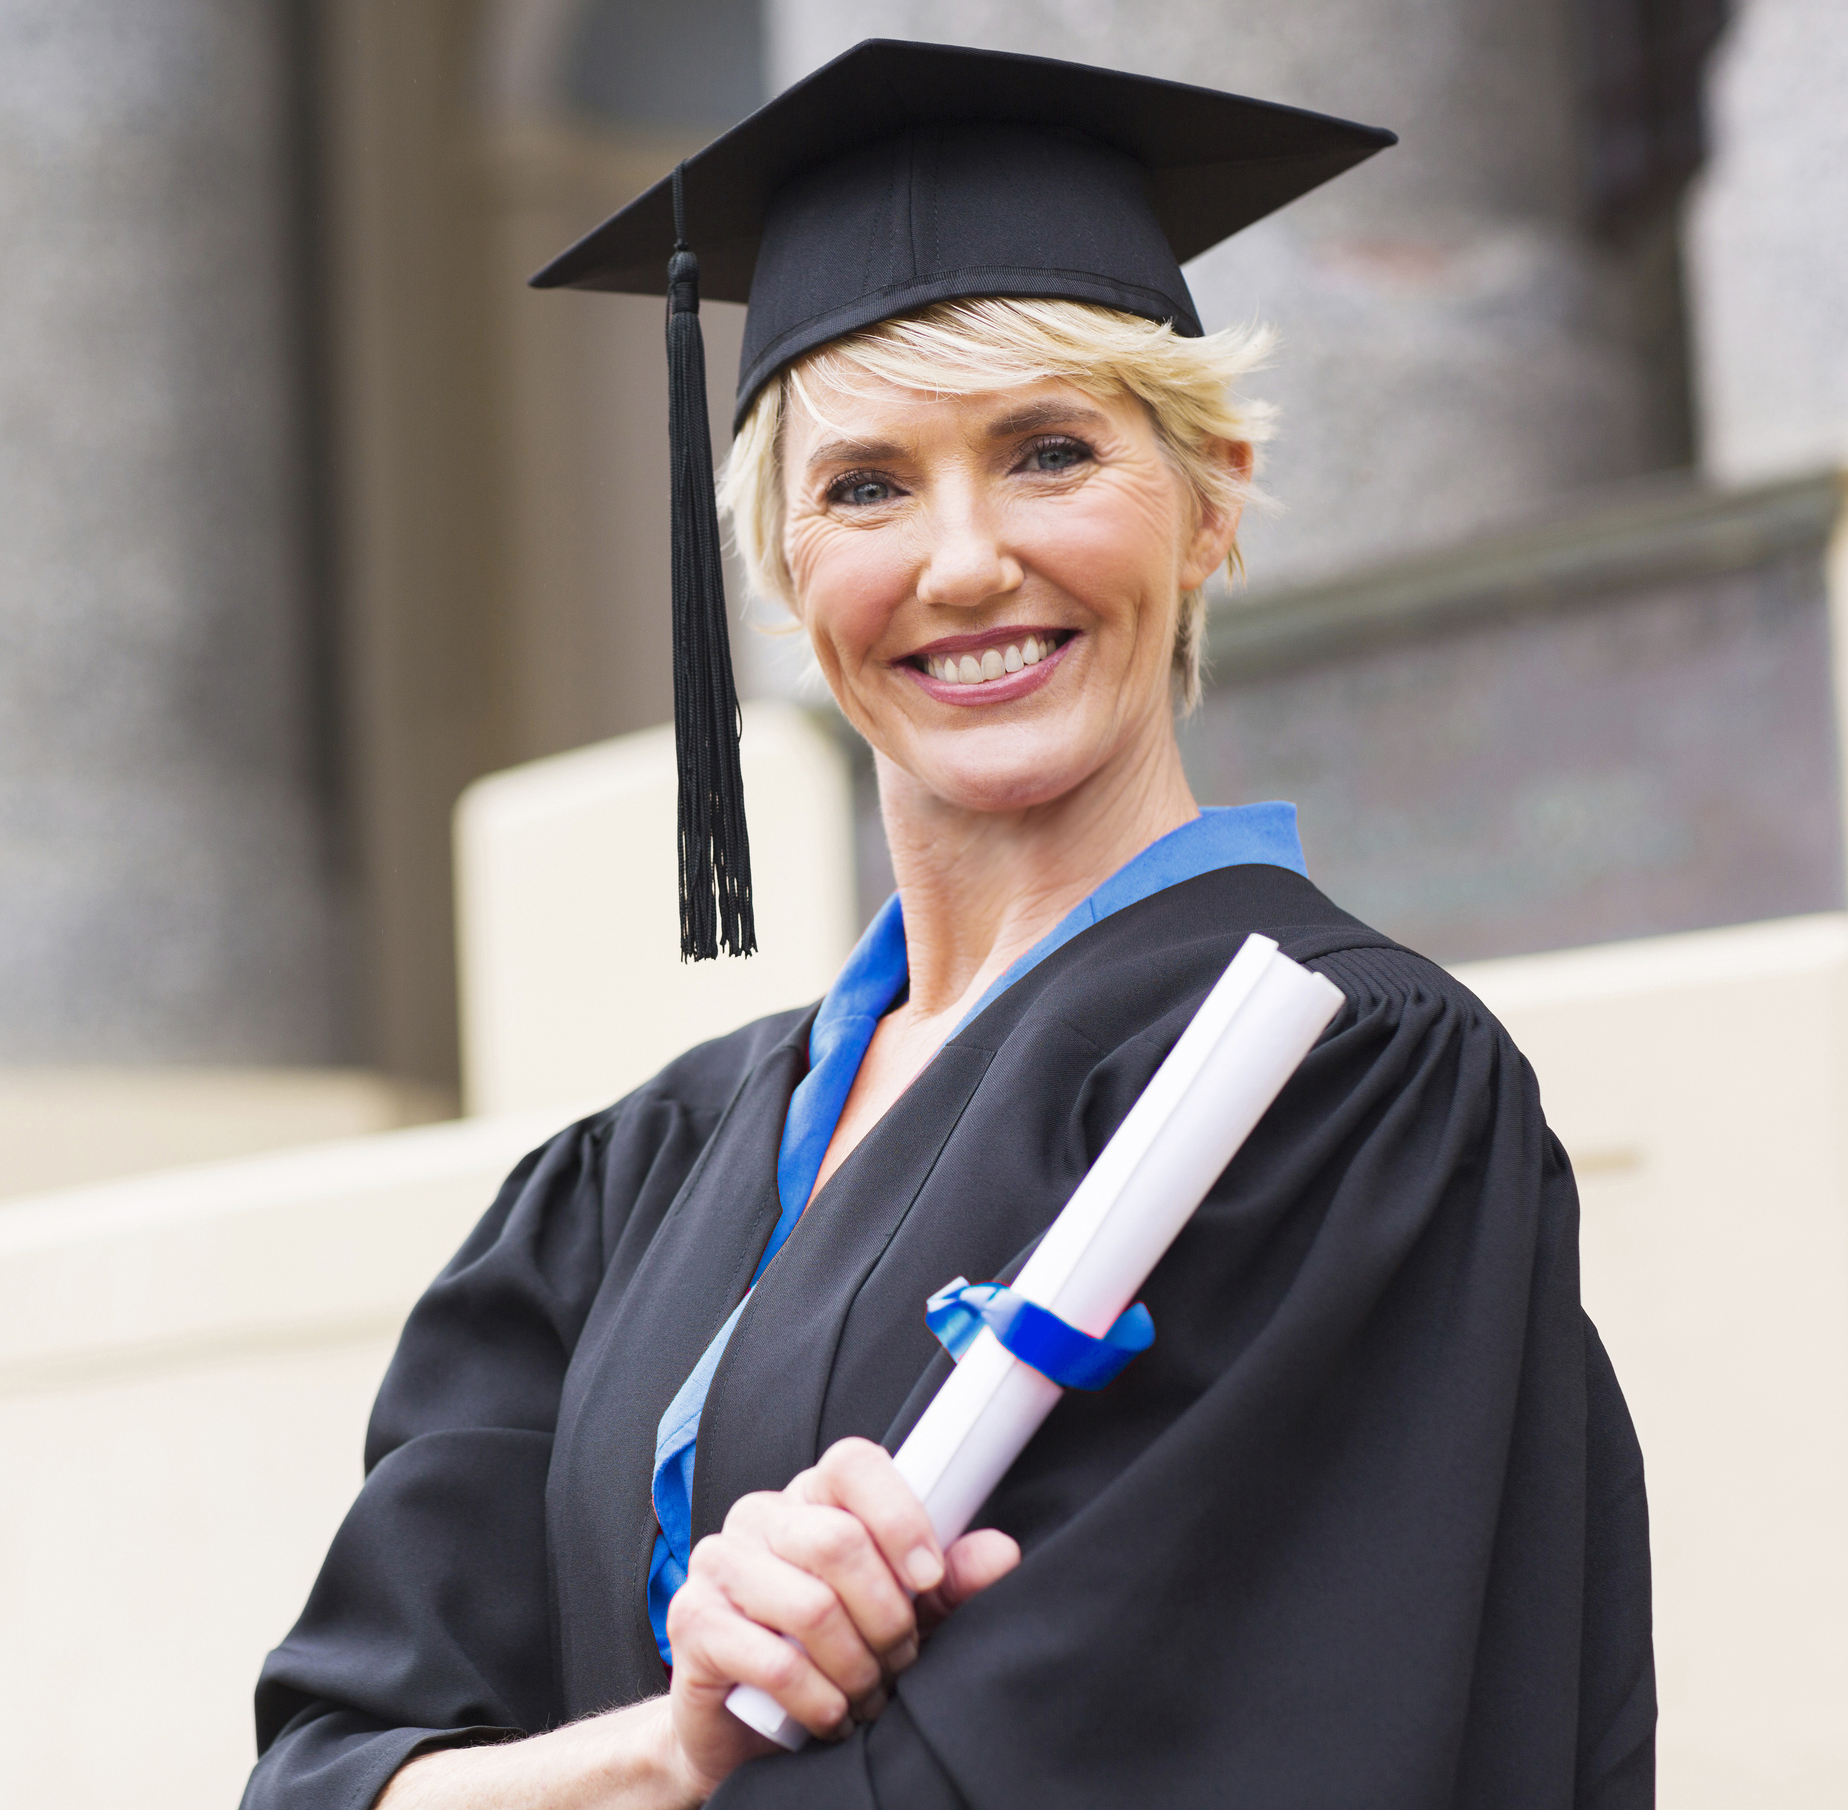 UAH Complete - Bachelor of Arts or Science in Professional Studies